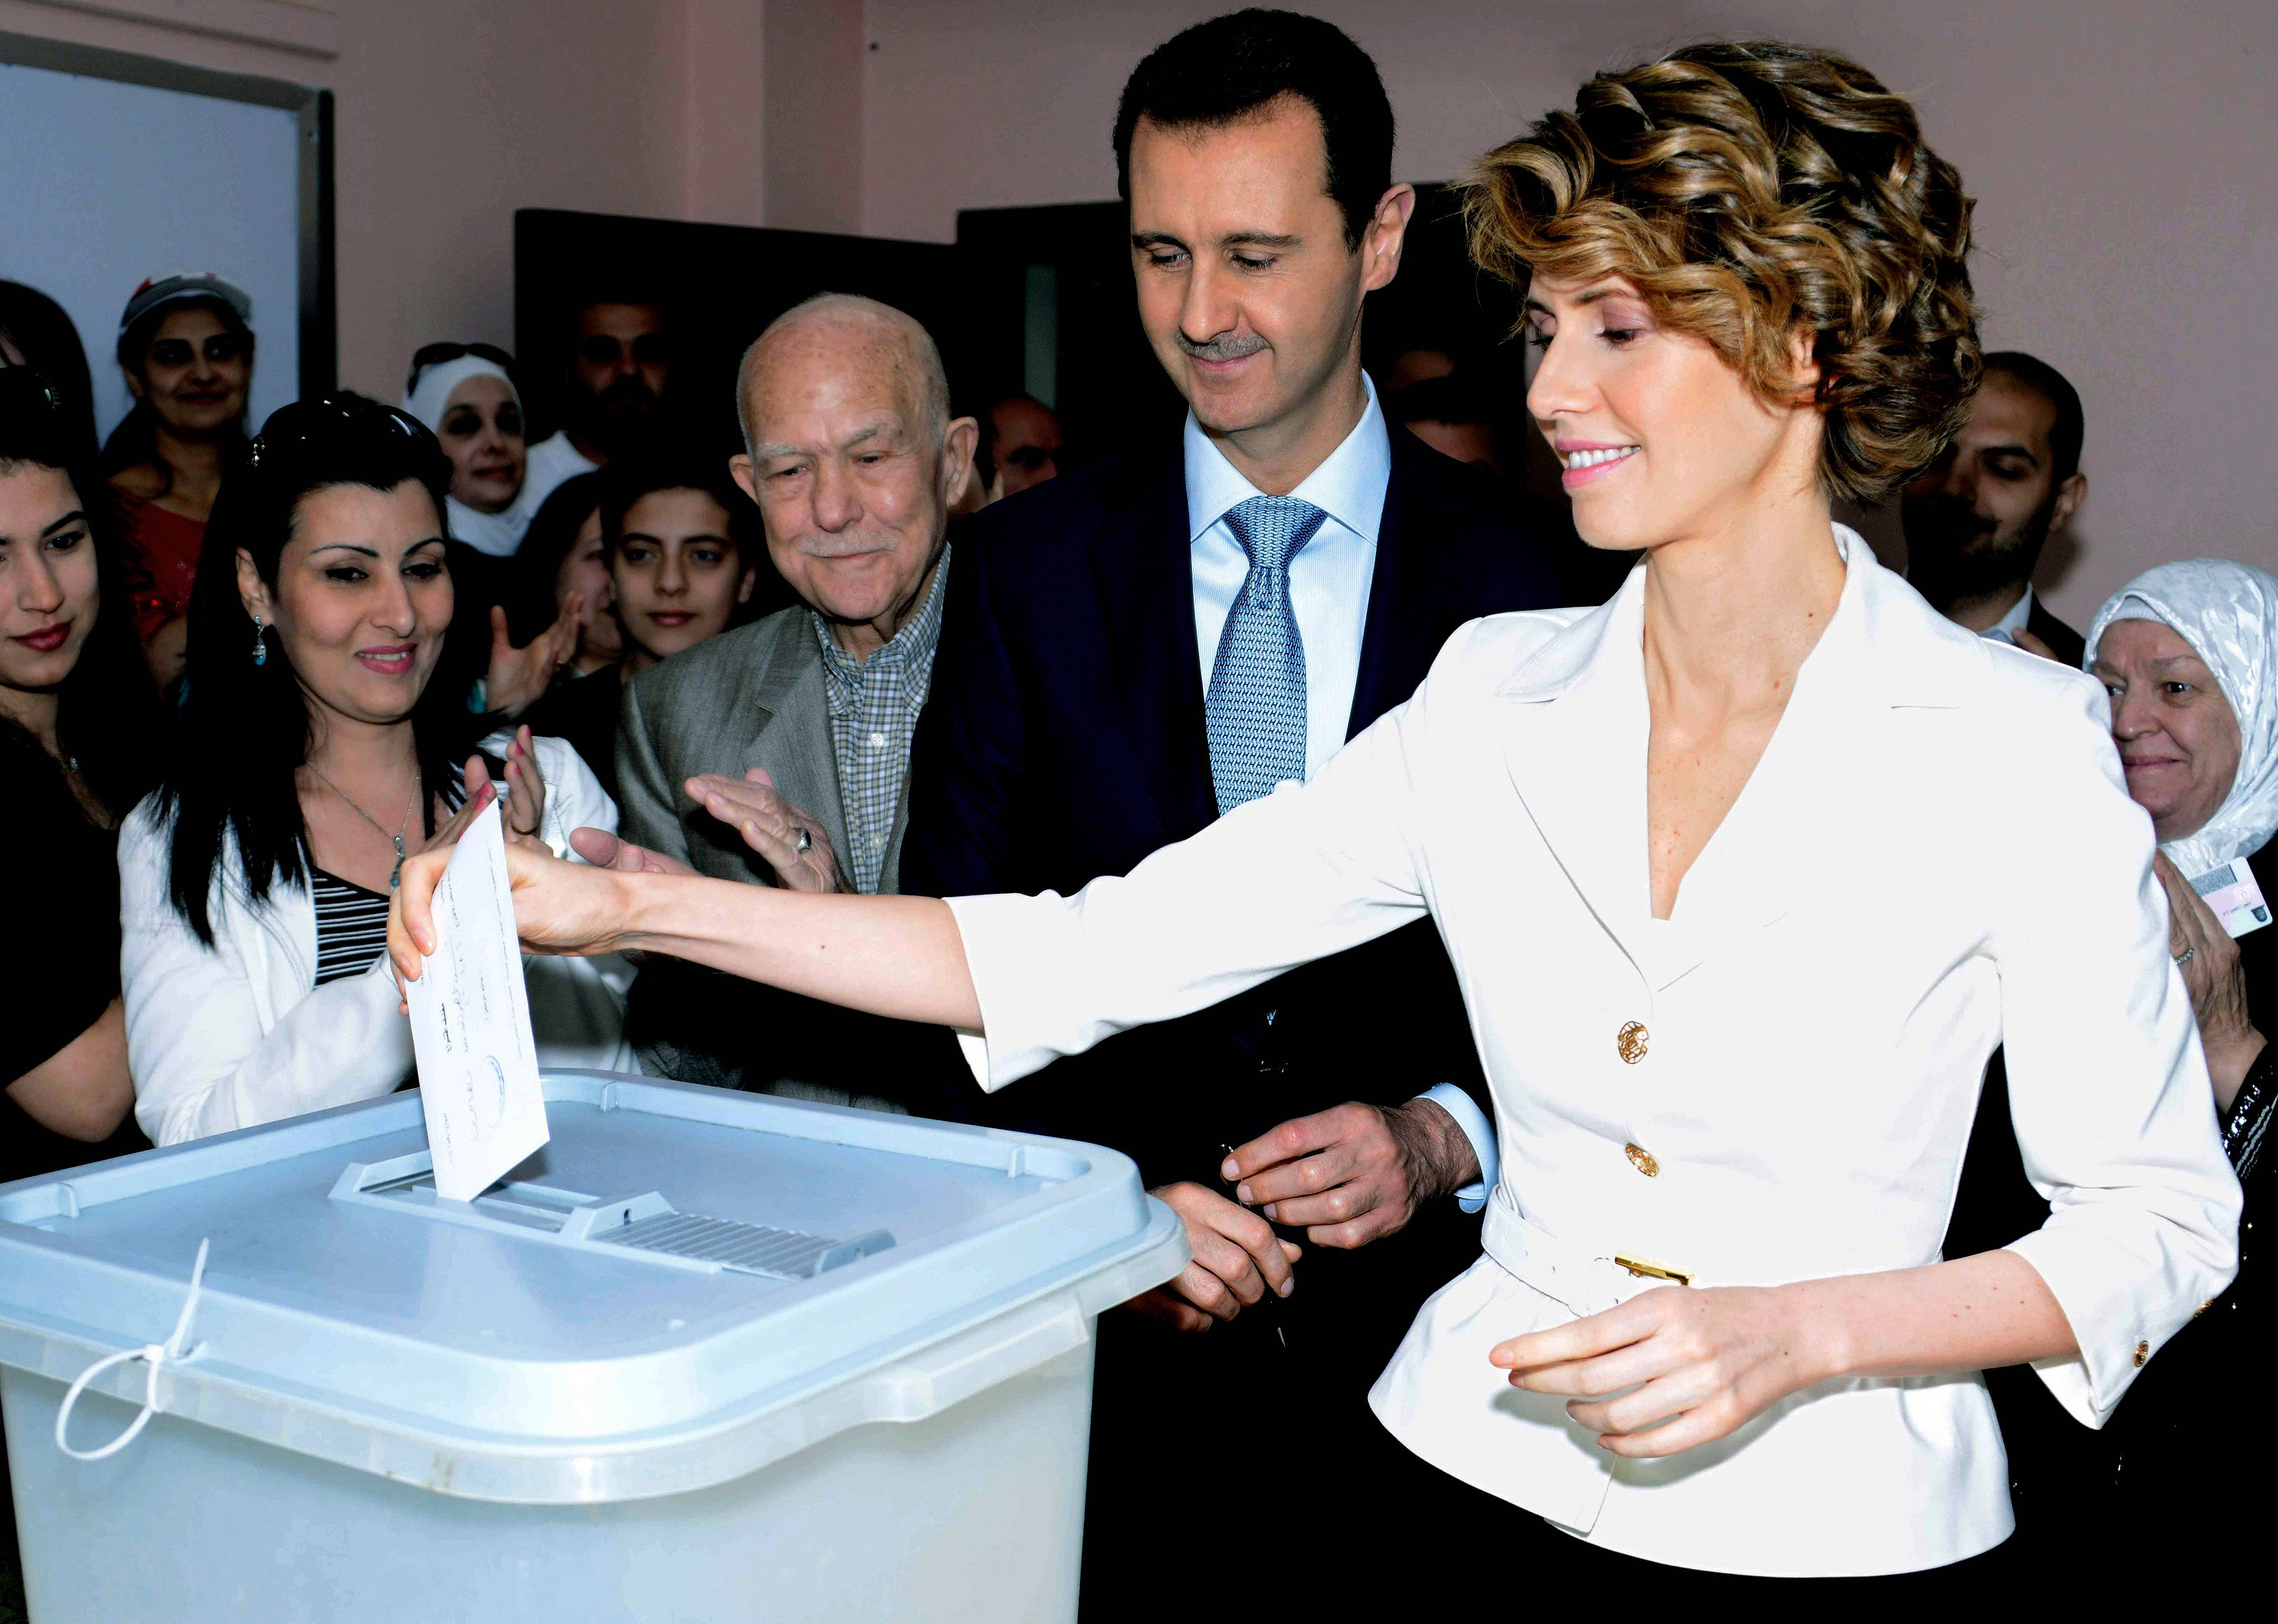 In this photo released by the Syrian official news agency SANA, Syrian first lady Asma Assad, right, casts her vote as  Syrian President Bashar Assad, stands next to her at a polling station in Damascus, Syria, Tuesday. Assad was re-elected in a landslide, officials said Wednesday.